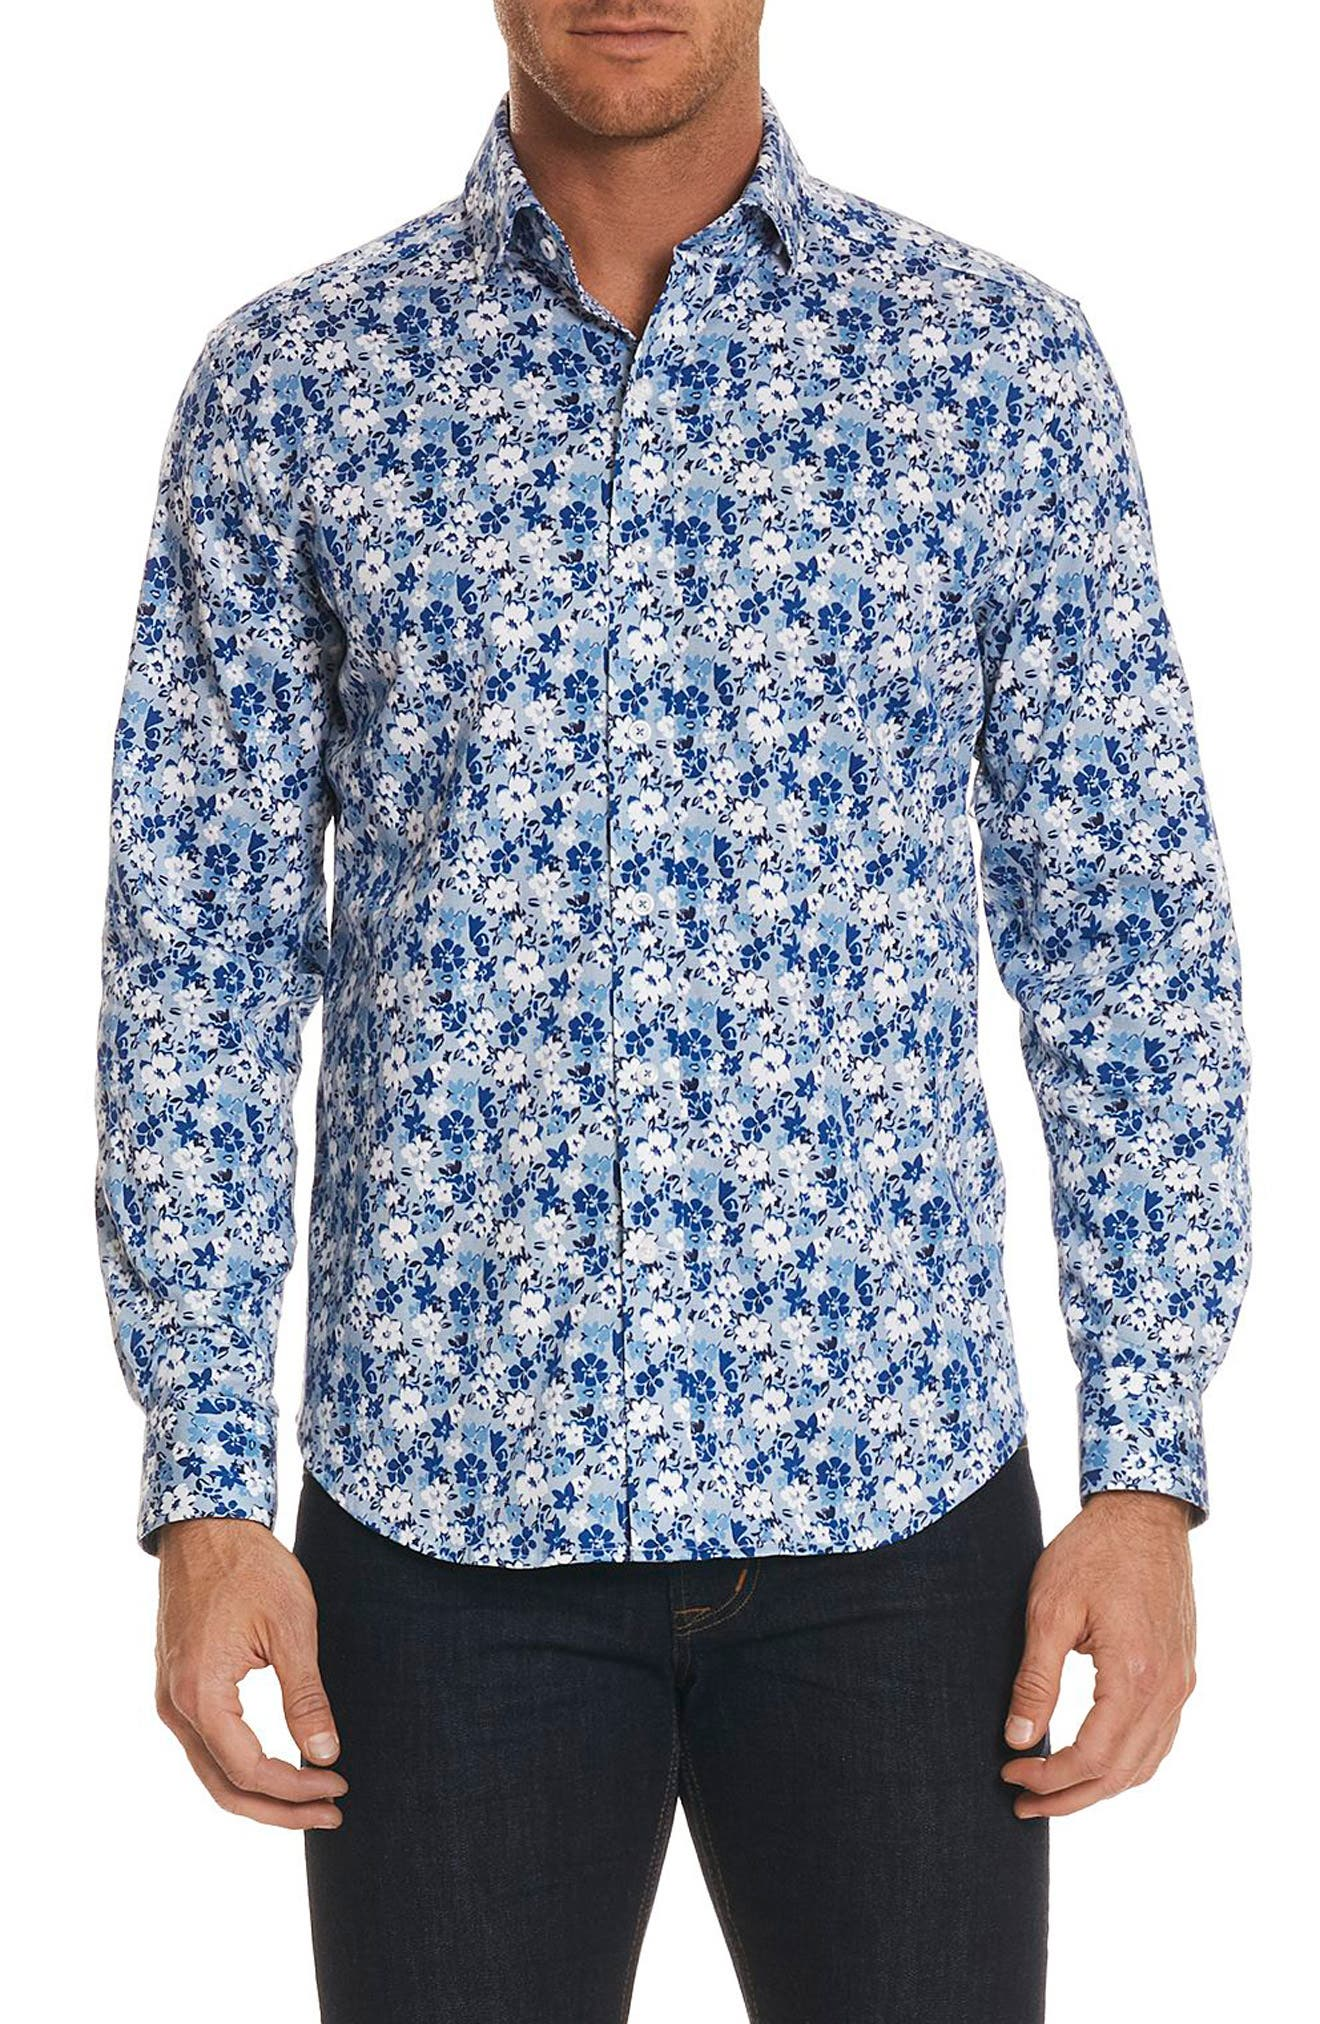 Asher Tailored Fit Floral Sport Shirt,                         Main,                         color,